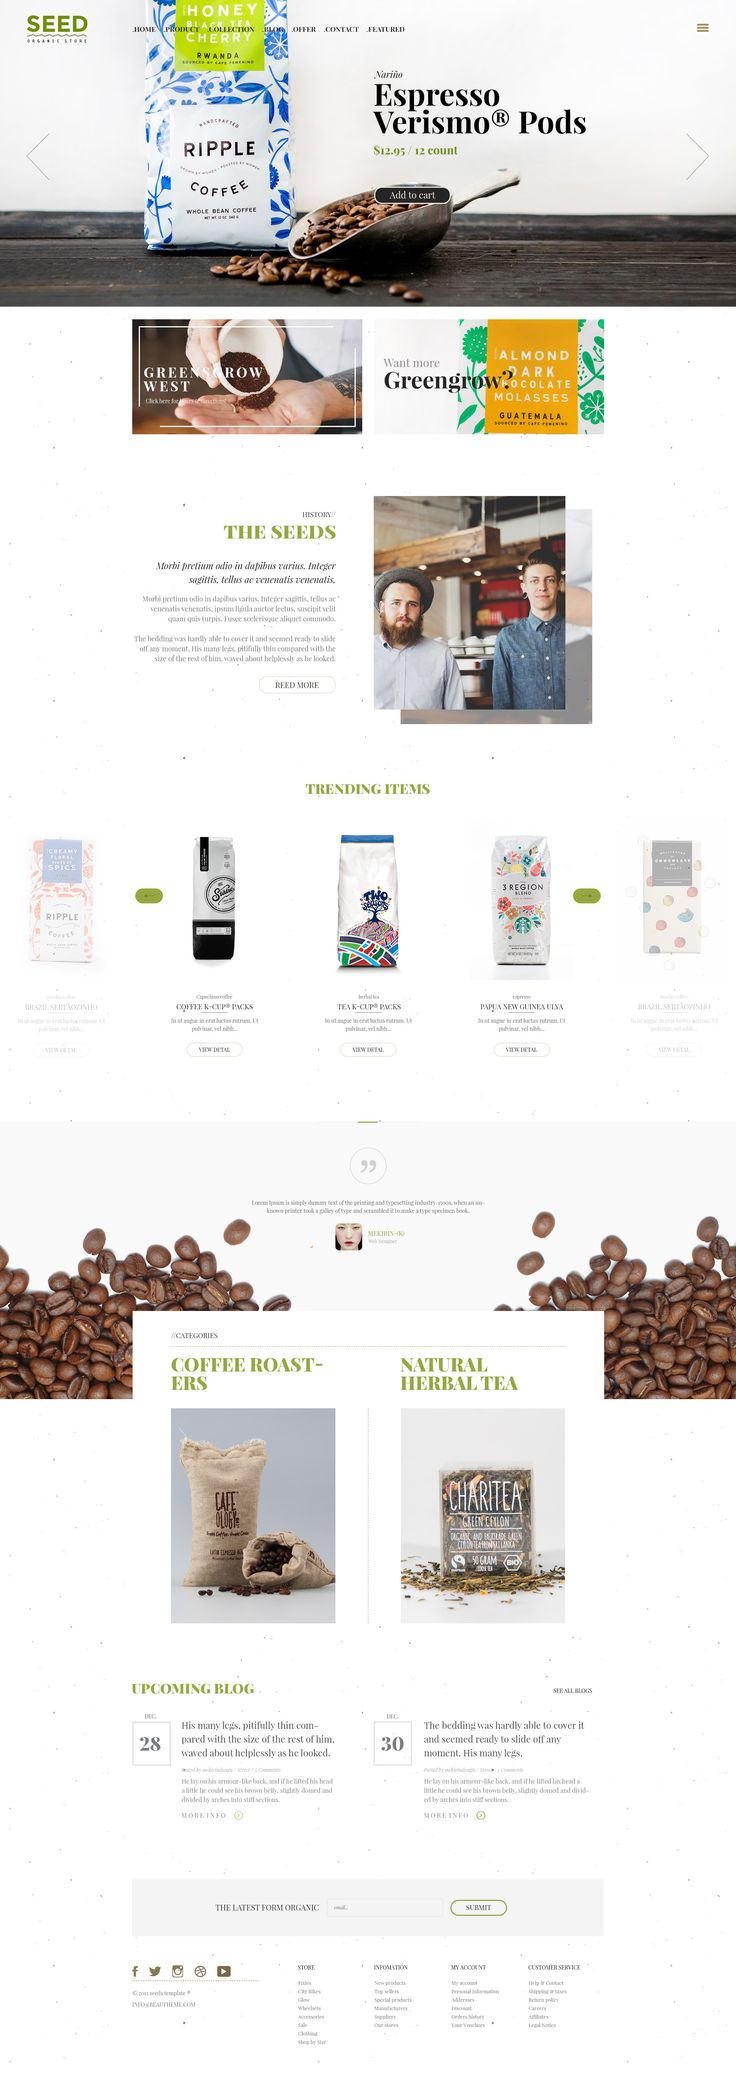 SEED - Organic Shop Farm Food Coffee Cosmetic Bio - WordPress | ThemeForest